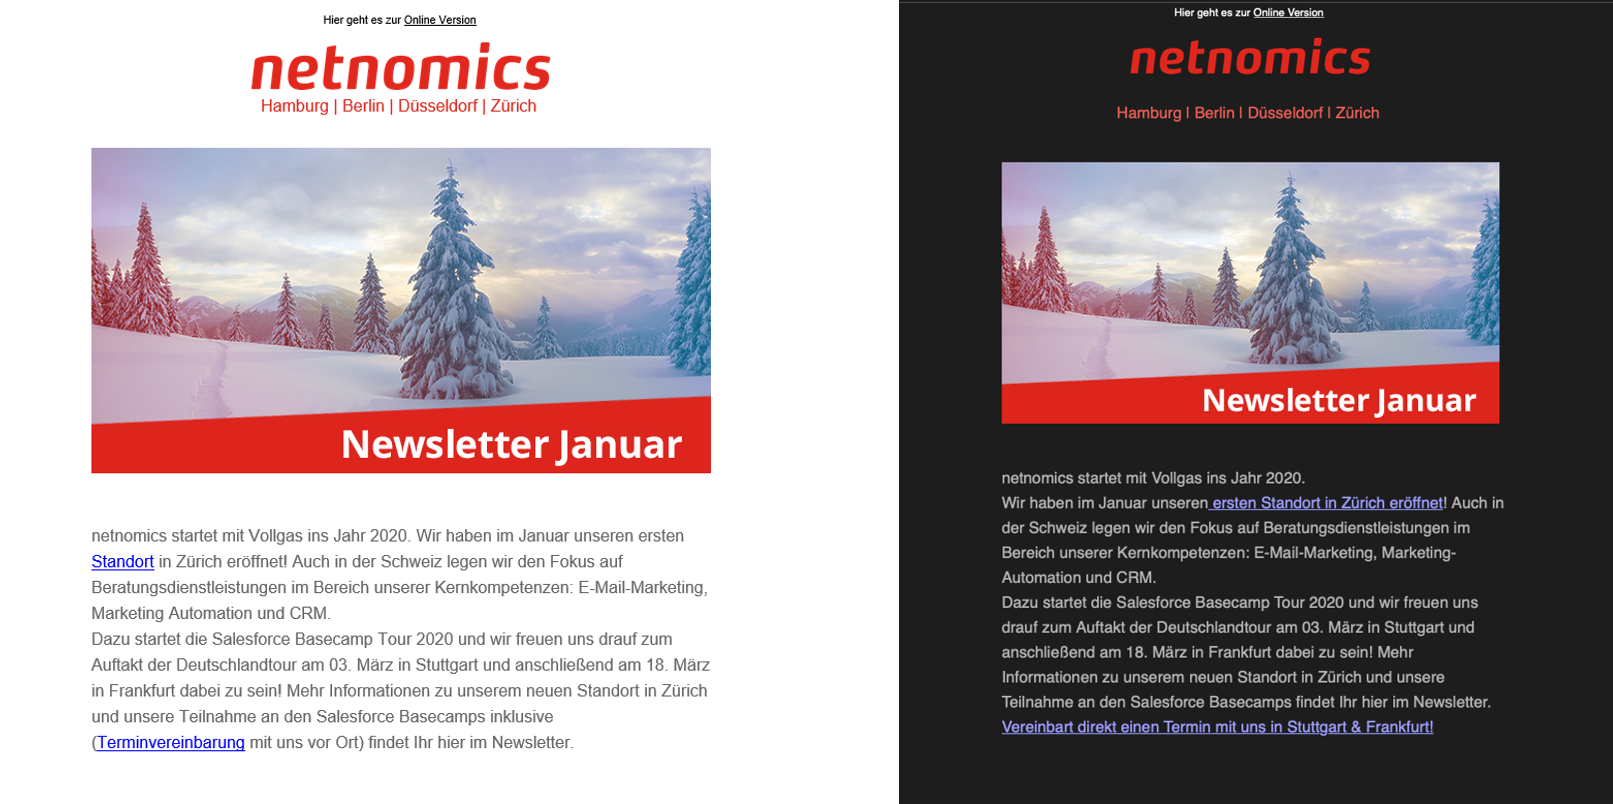 netnomics Newsletter Dark Mode vs. Light Mode